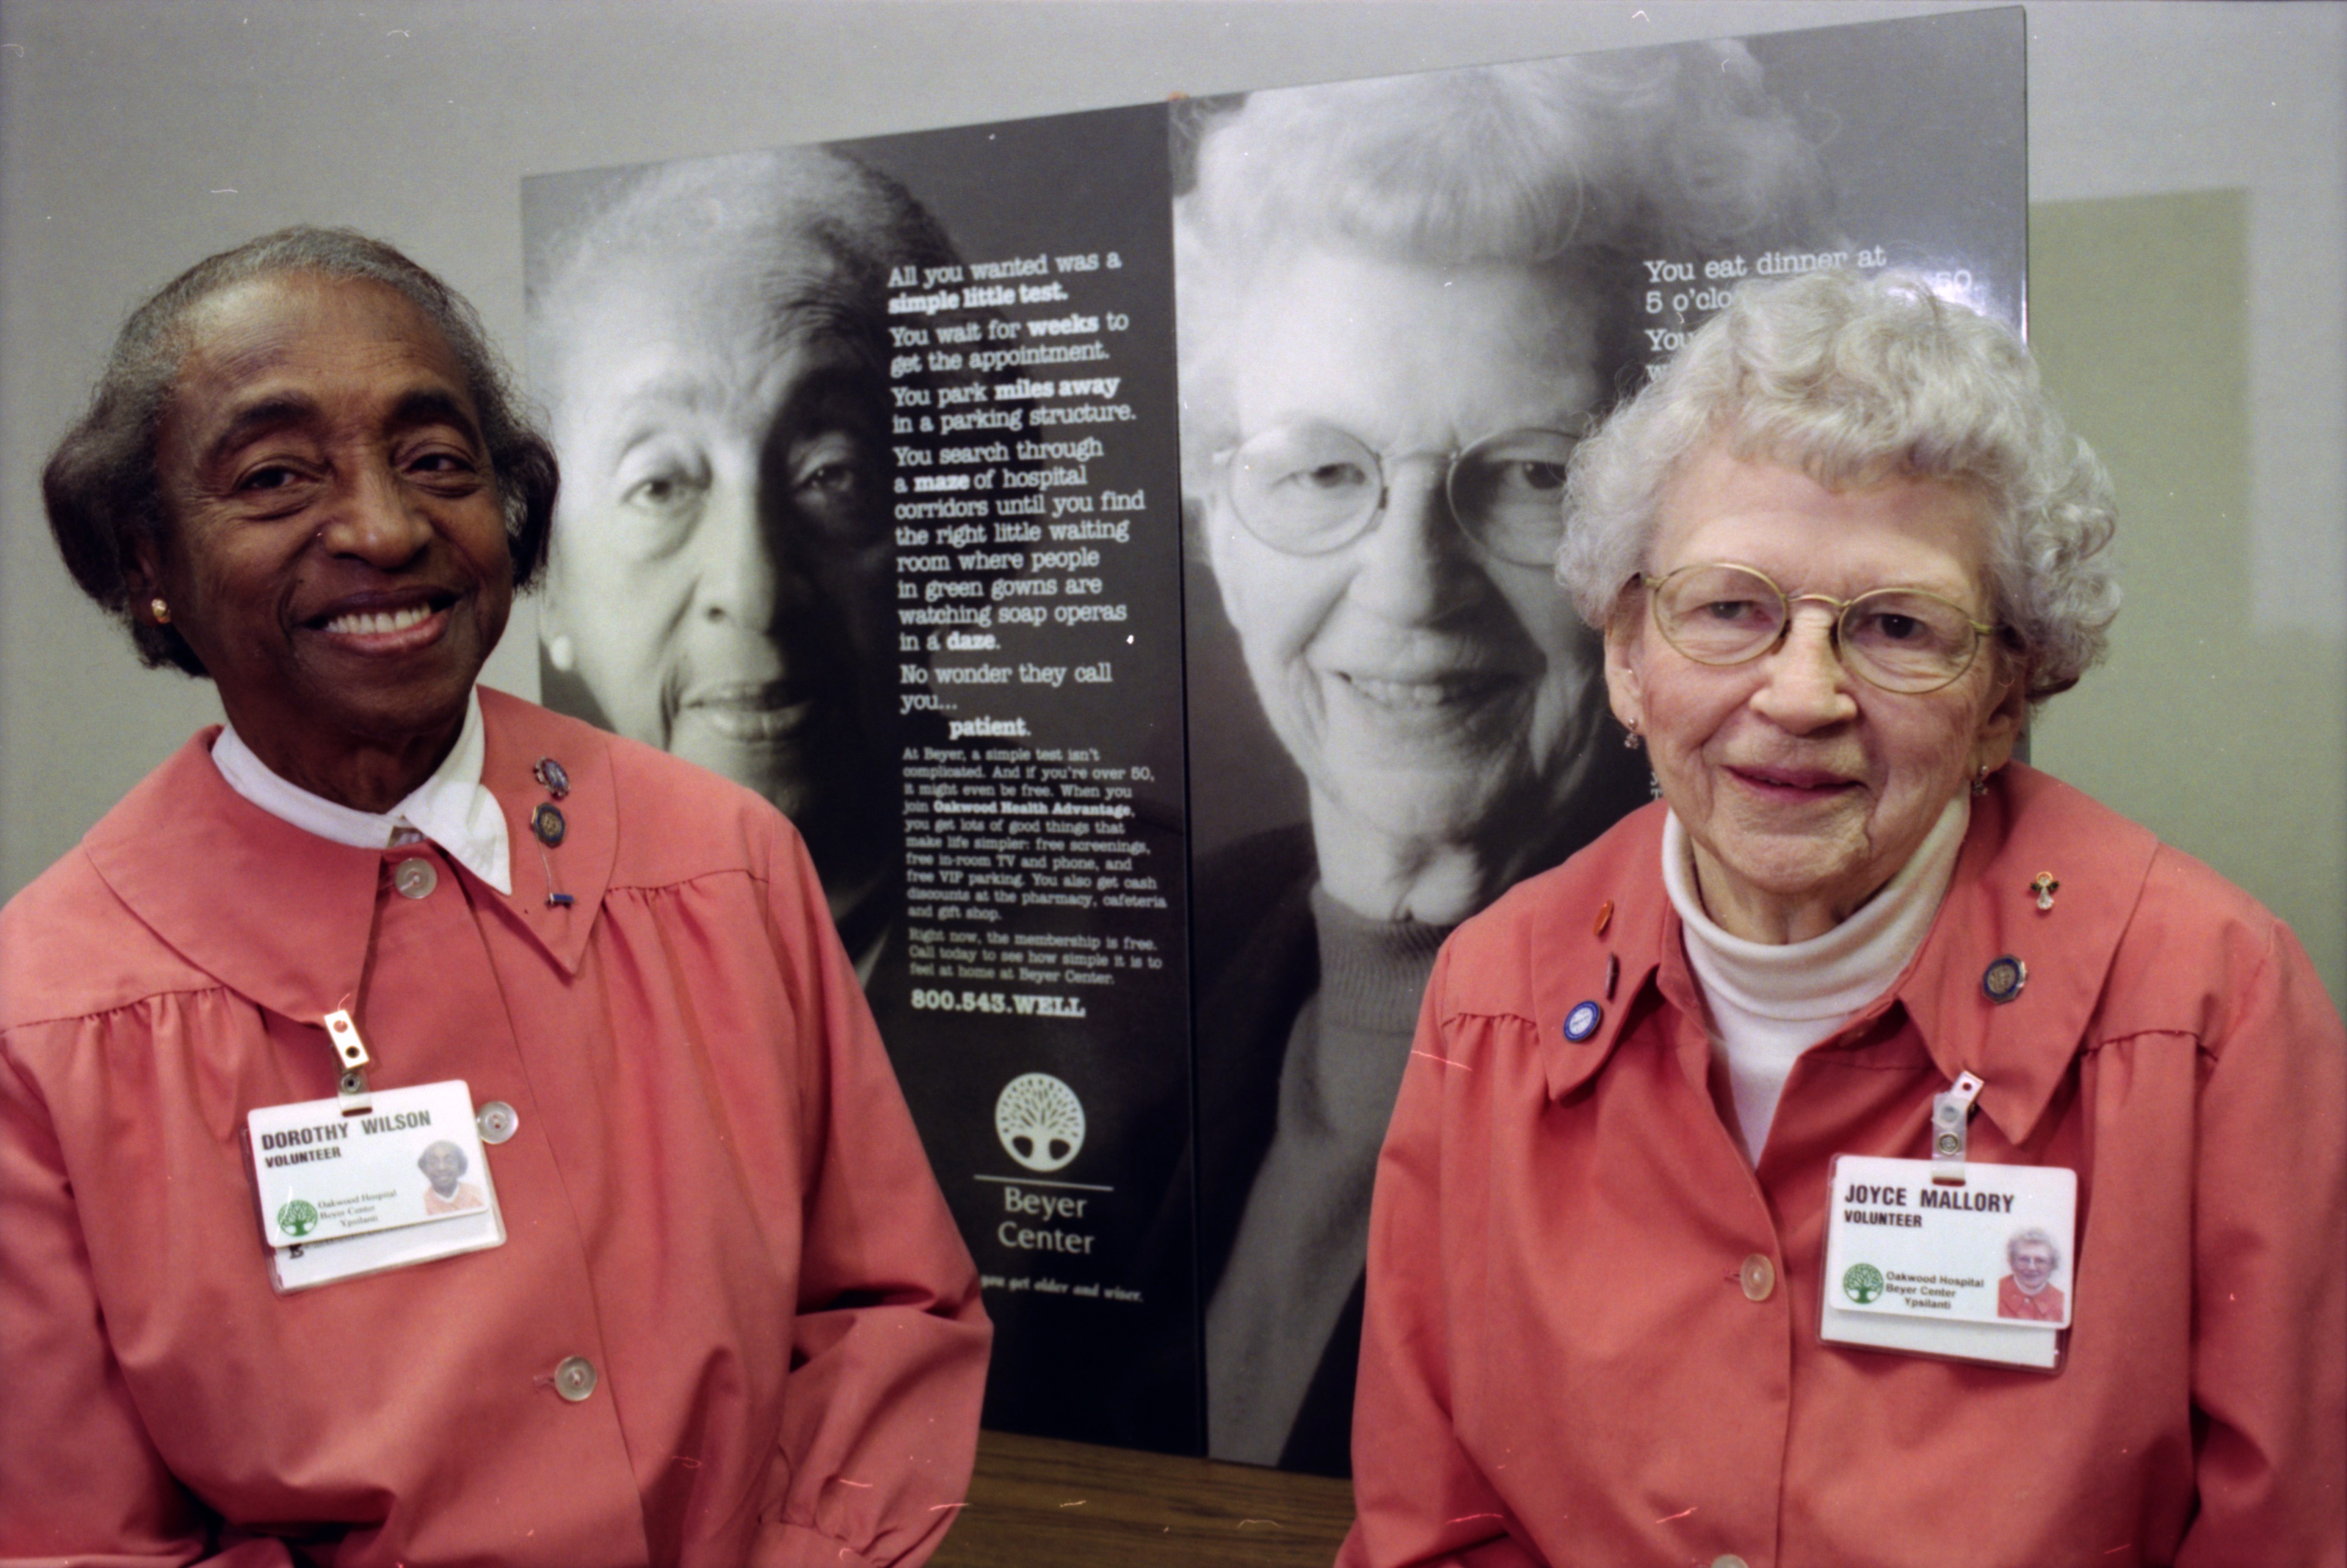 Dorothy Wilson and Joyce Mallory Pose in Front of Ads for the Beyer Center, February 1999 image